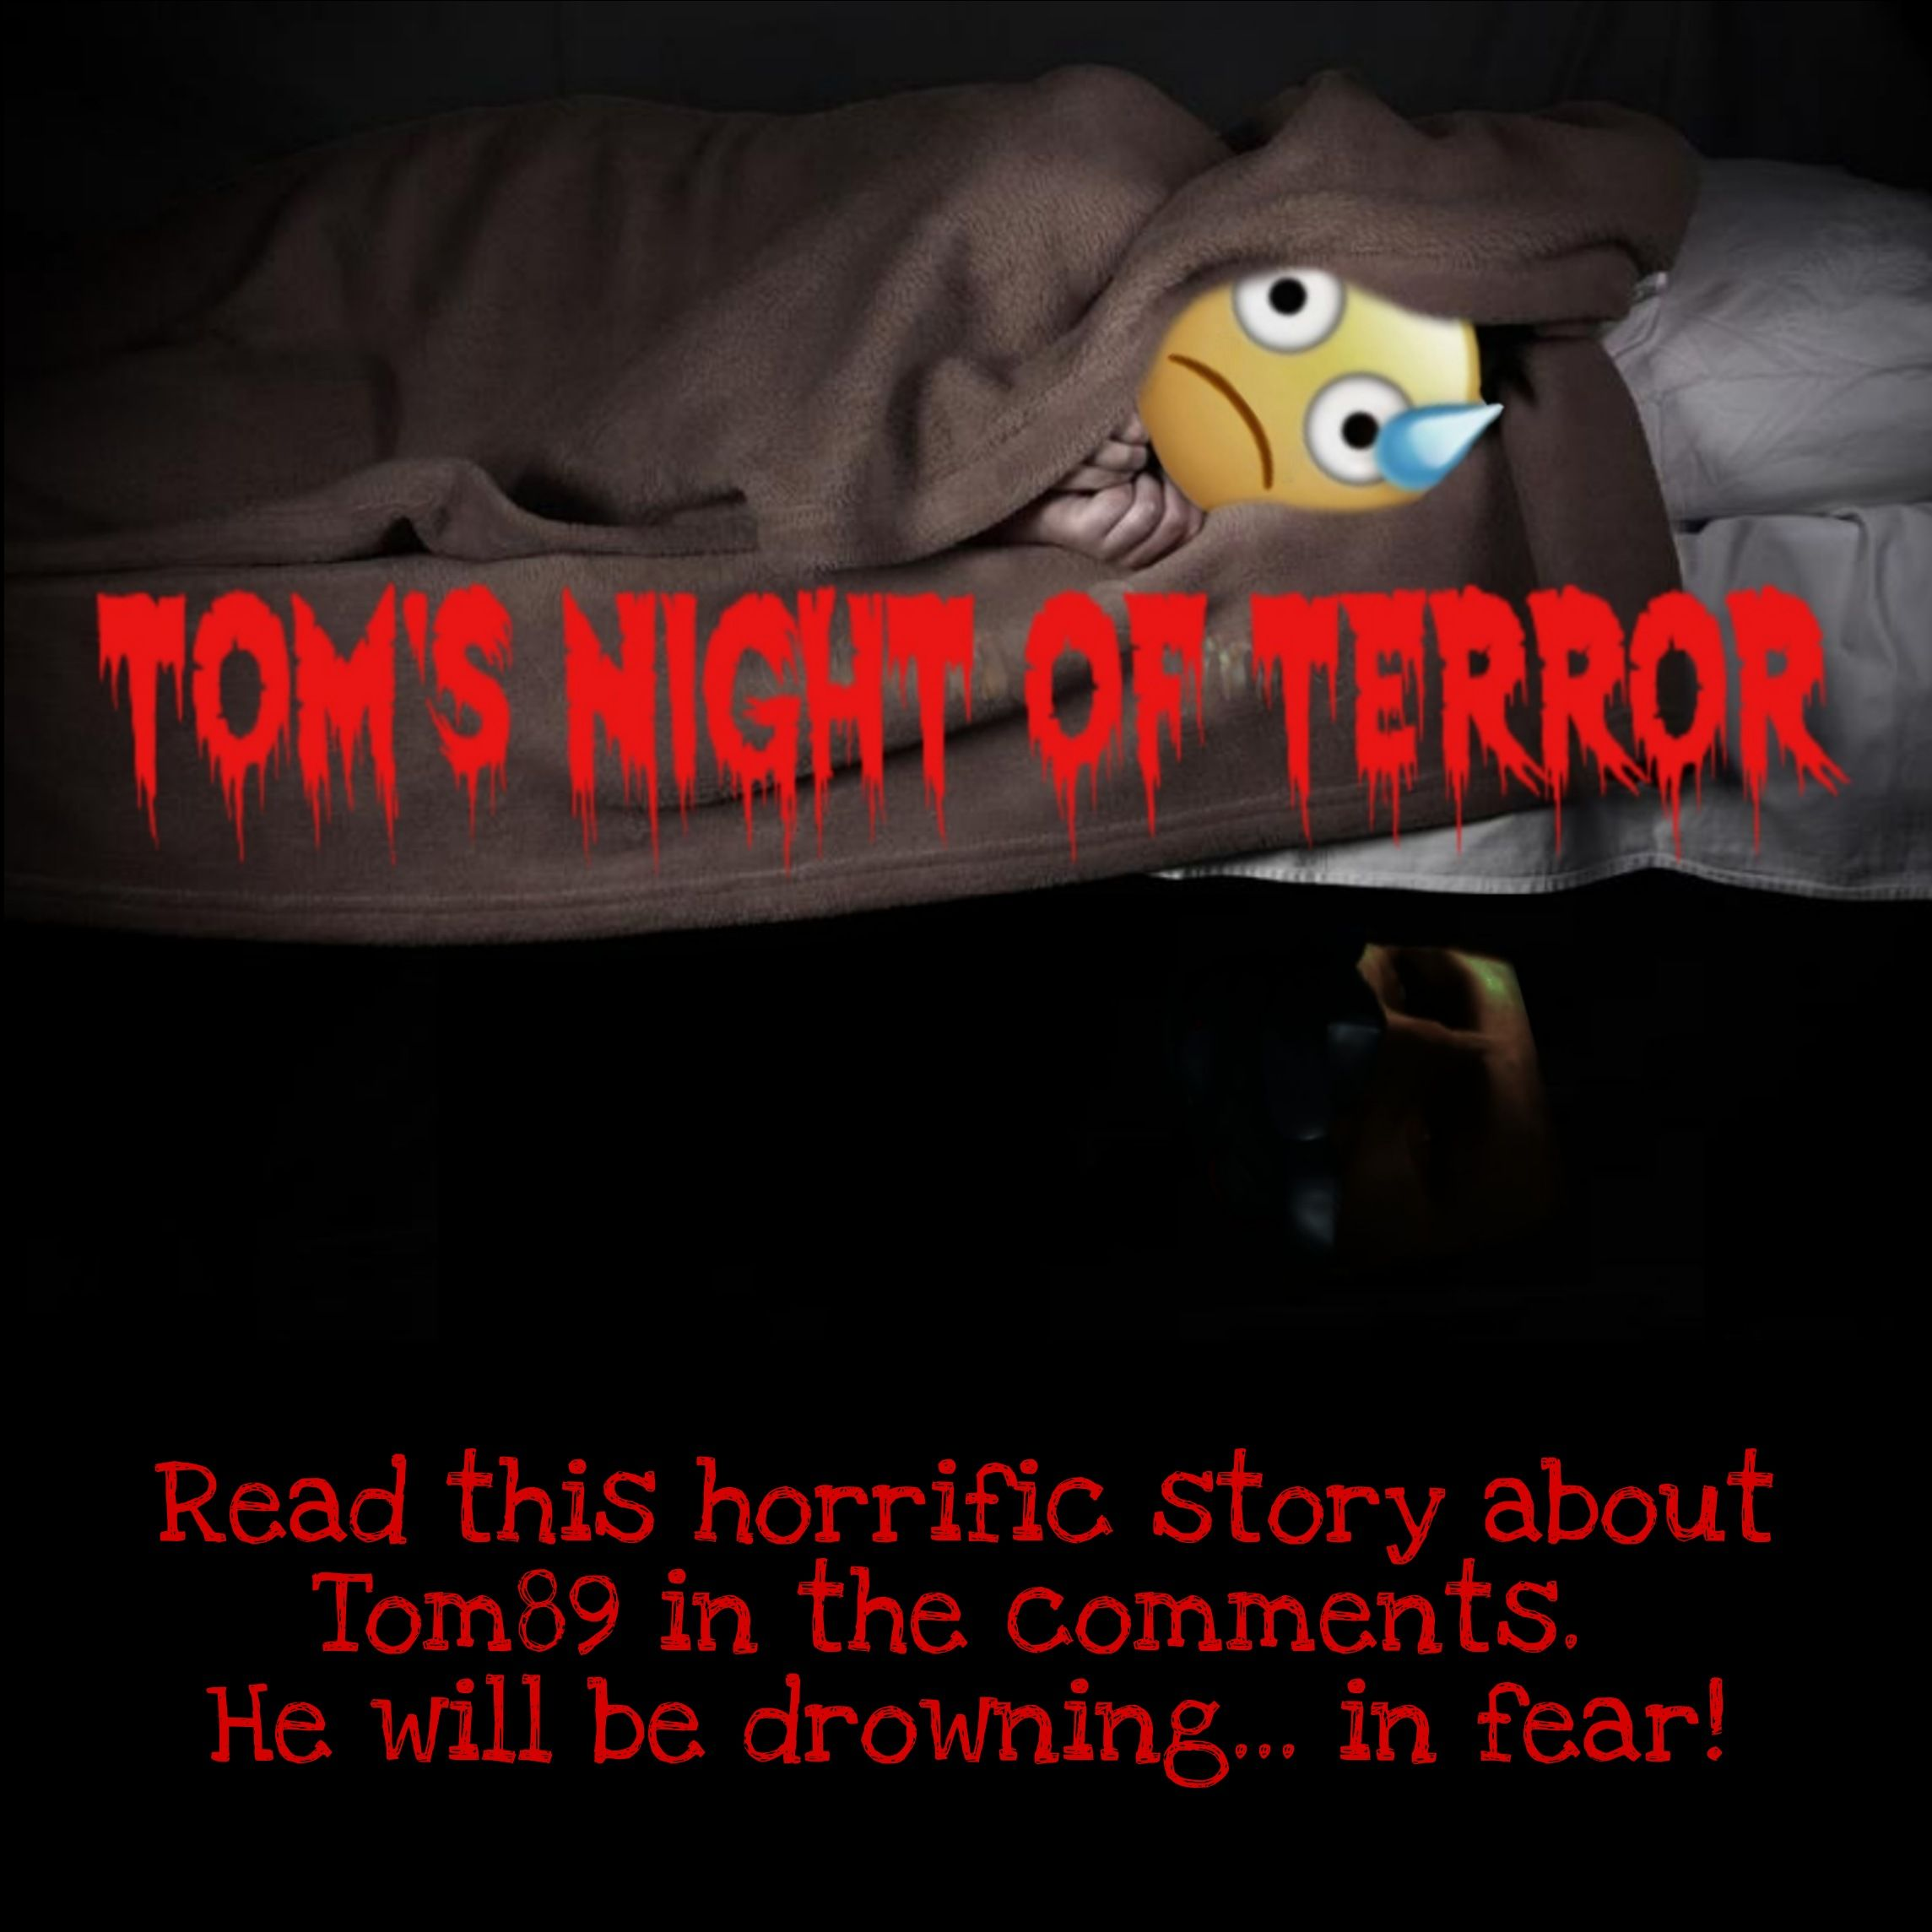 First spooky story of The Hugelol Spooktober Chronicles: Tom's Night of Terror!